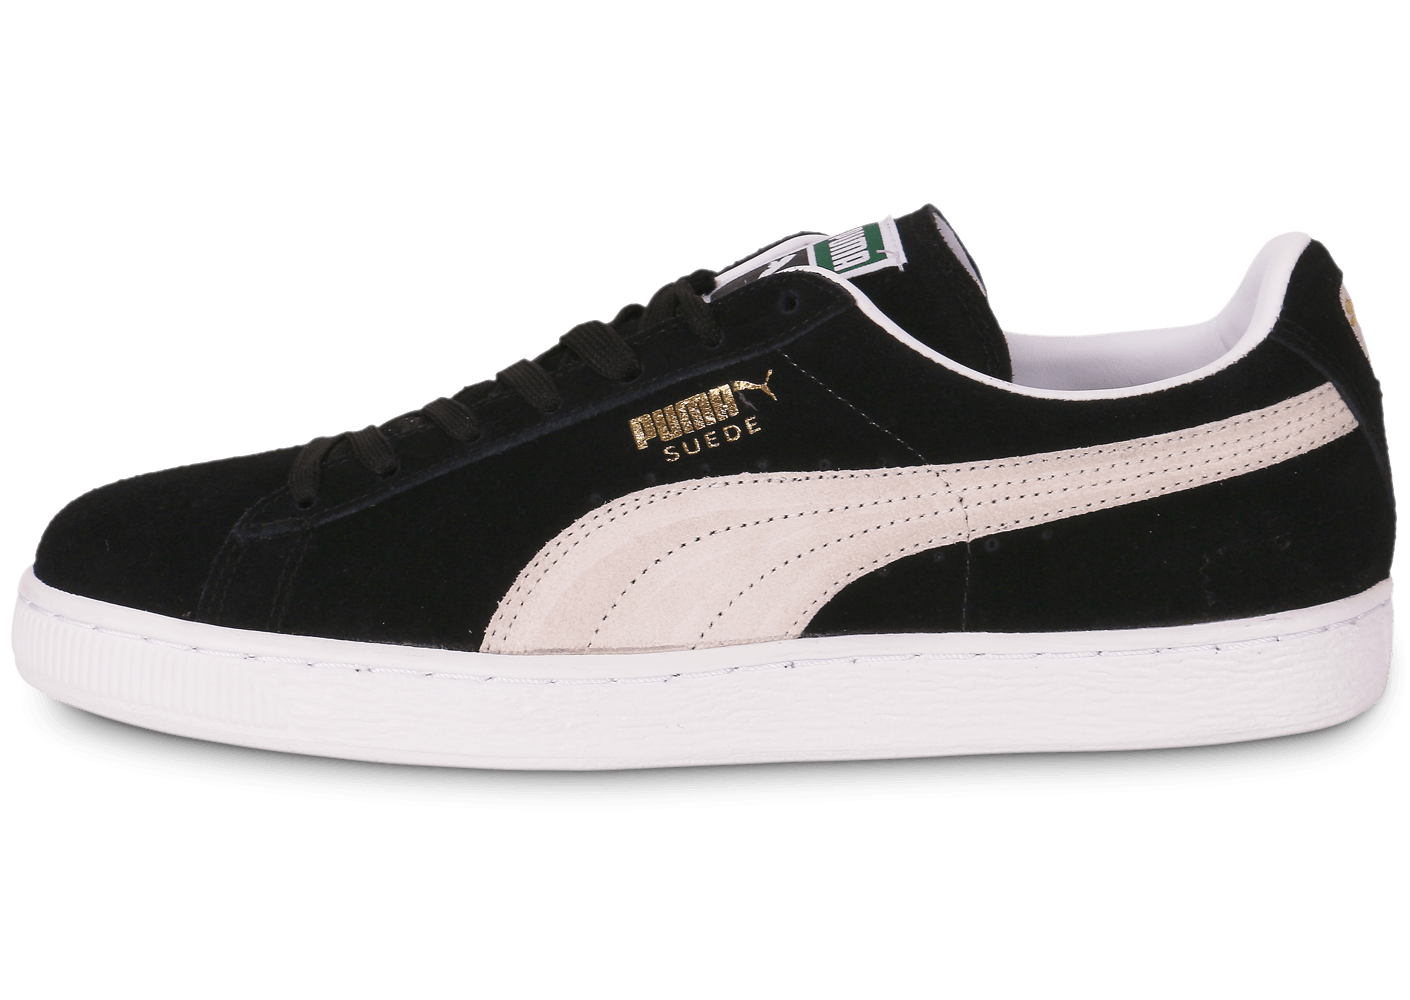 puma suede classic noire chaussures homme chausport. Black Bedroom Furniture Sets. Home Design Ideas